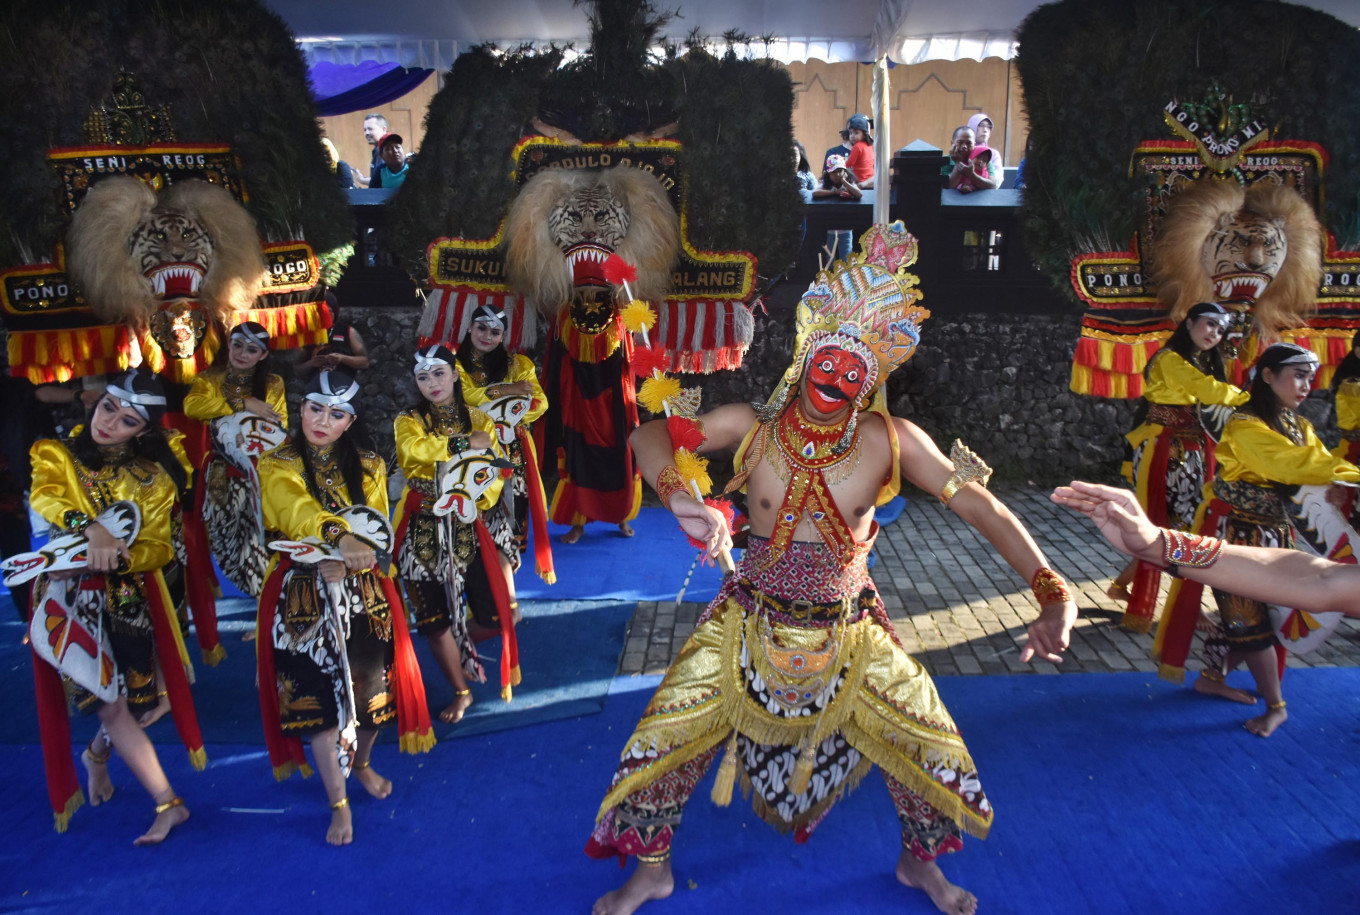 The 'sewandono' dance is performed by the Sardulo Djojo 'reog' (traditional masked dance) artist collective of Malang at the 2019 Archipelago Panji Festival.